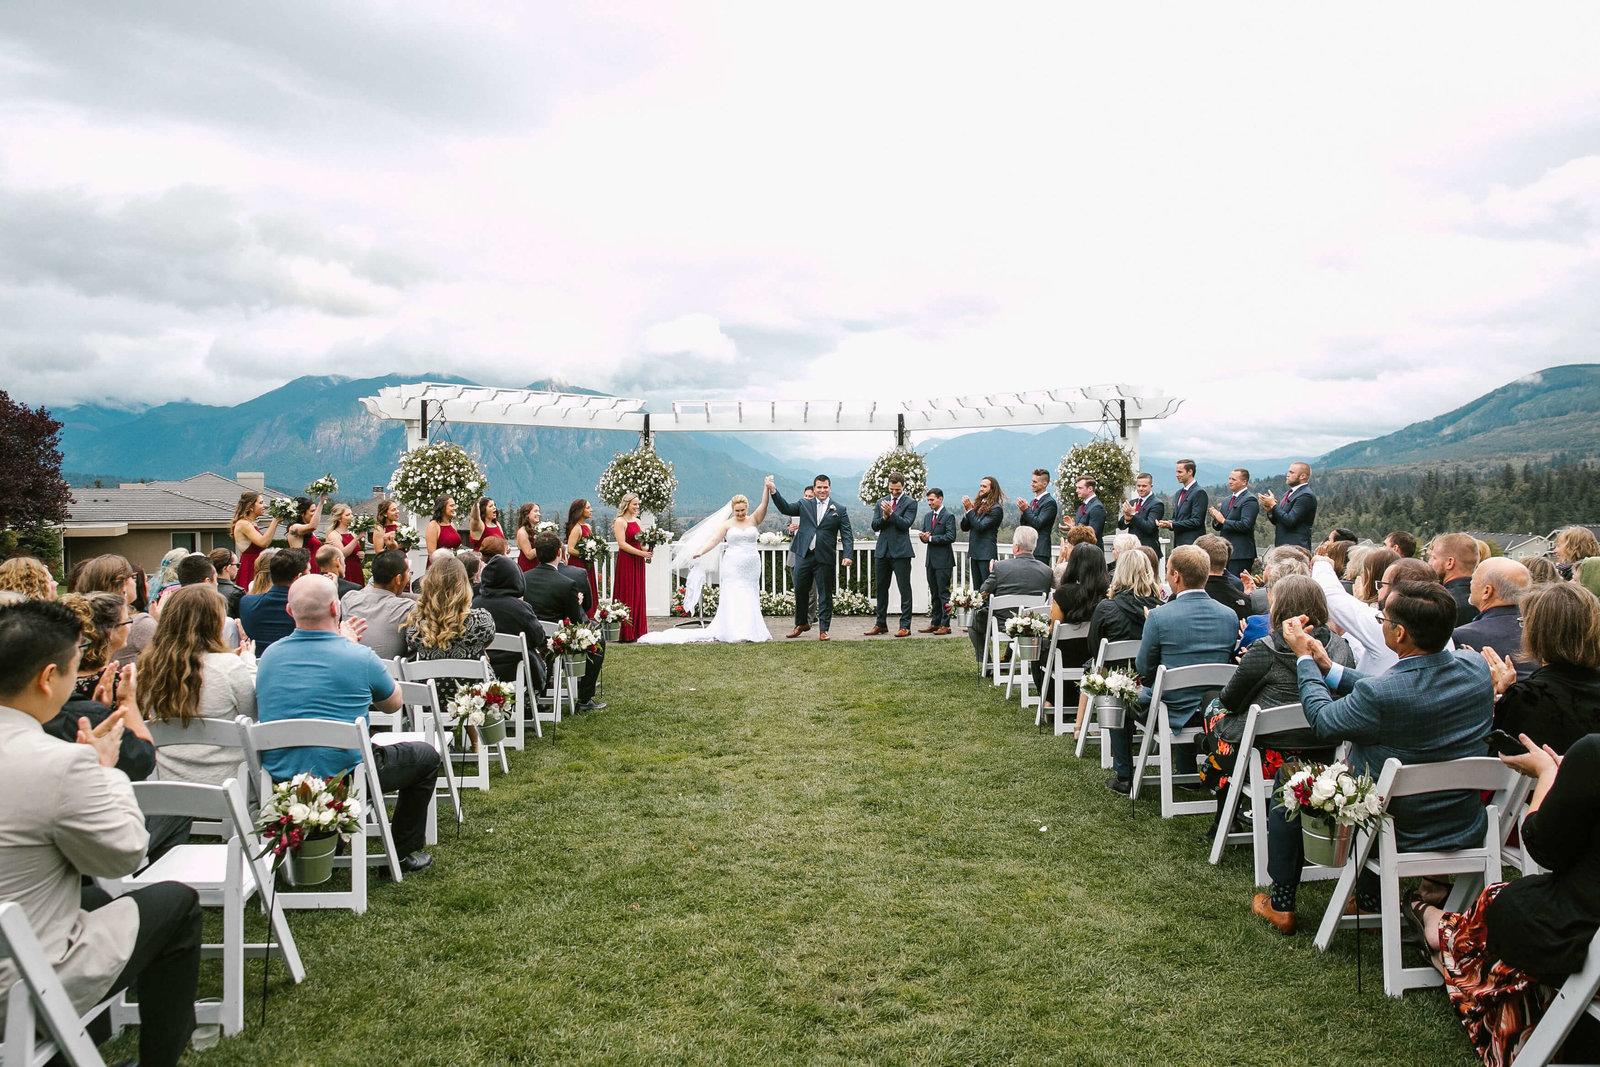 Lynnsey+Sam_The_Club_at_Snoqualmie_ridge_wedding_Seattle_by_Adina_Preston_Weddings_609